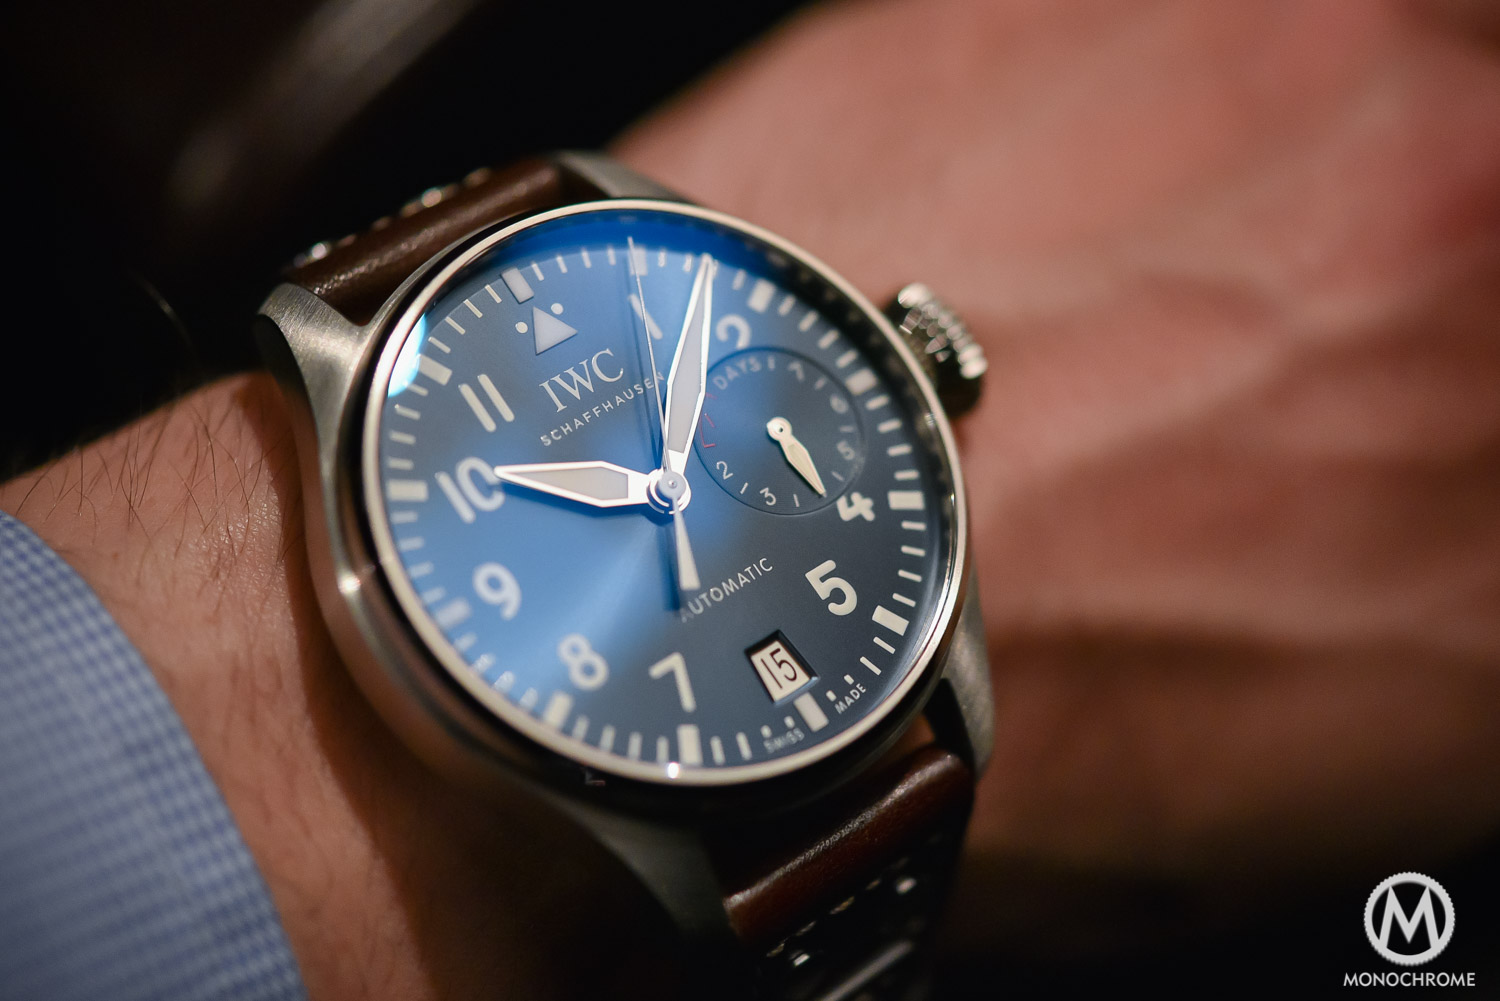 SIHH 2016 – Hands-on with the new IWC Big Pilot's Watch Edition 'Le Petit Prince' ref. IW500916 – Live pics & price